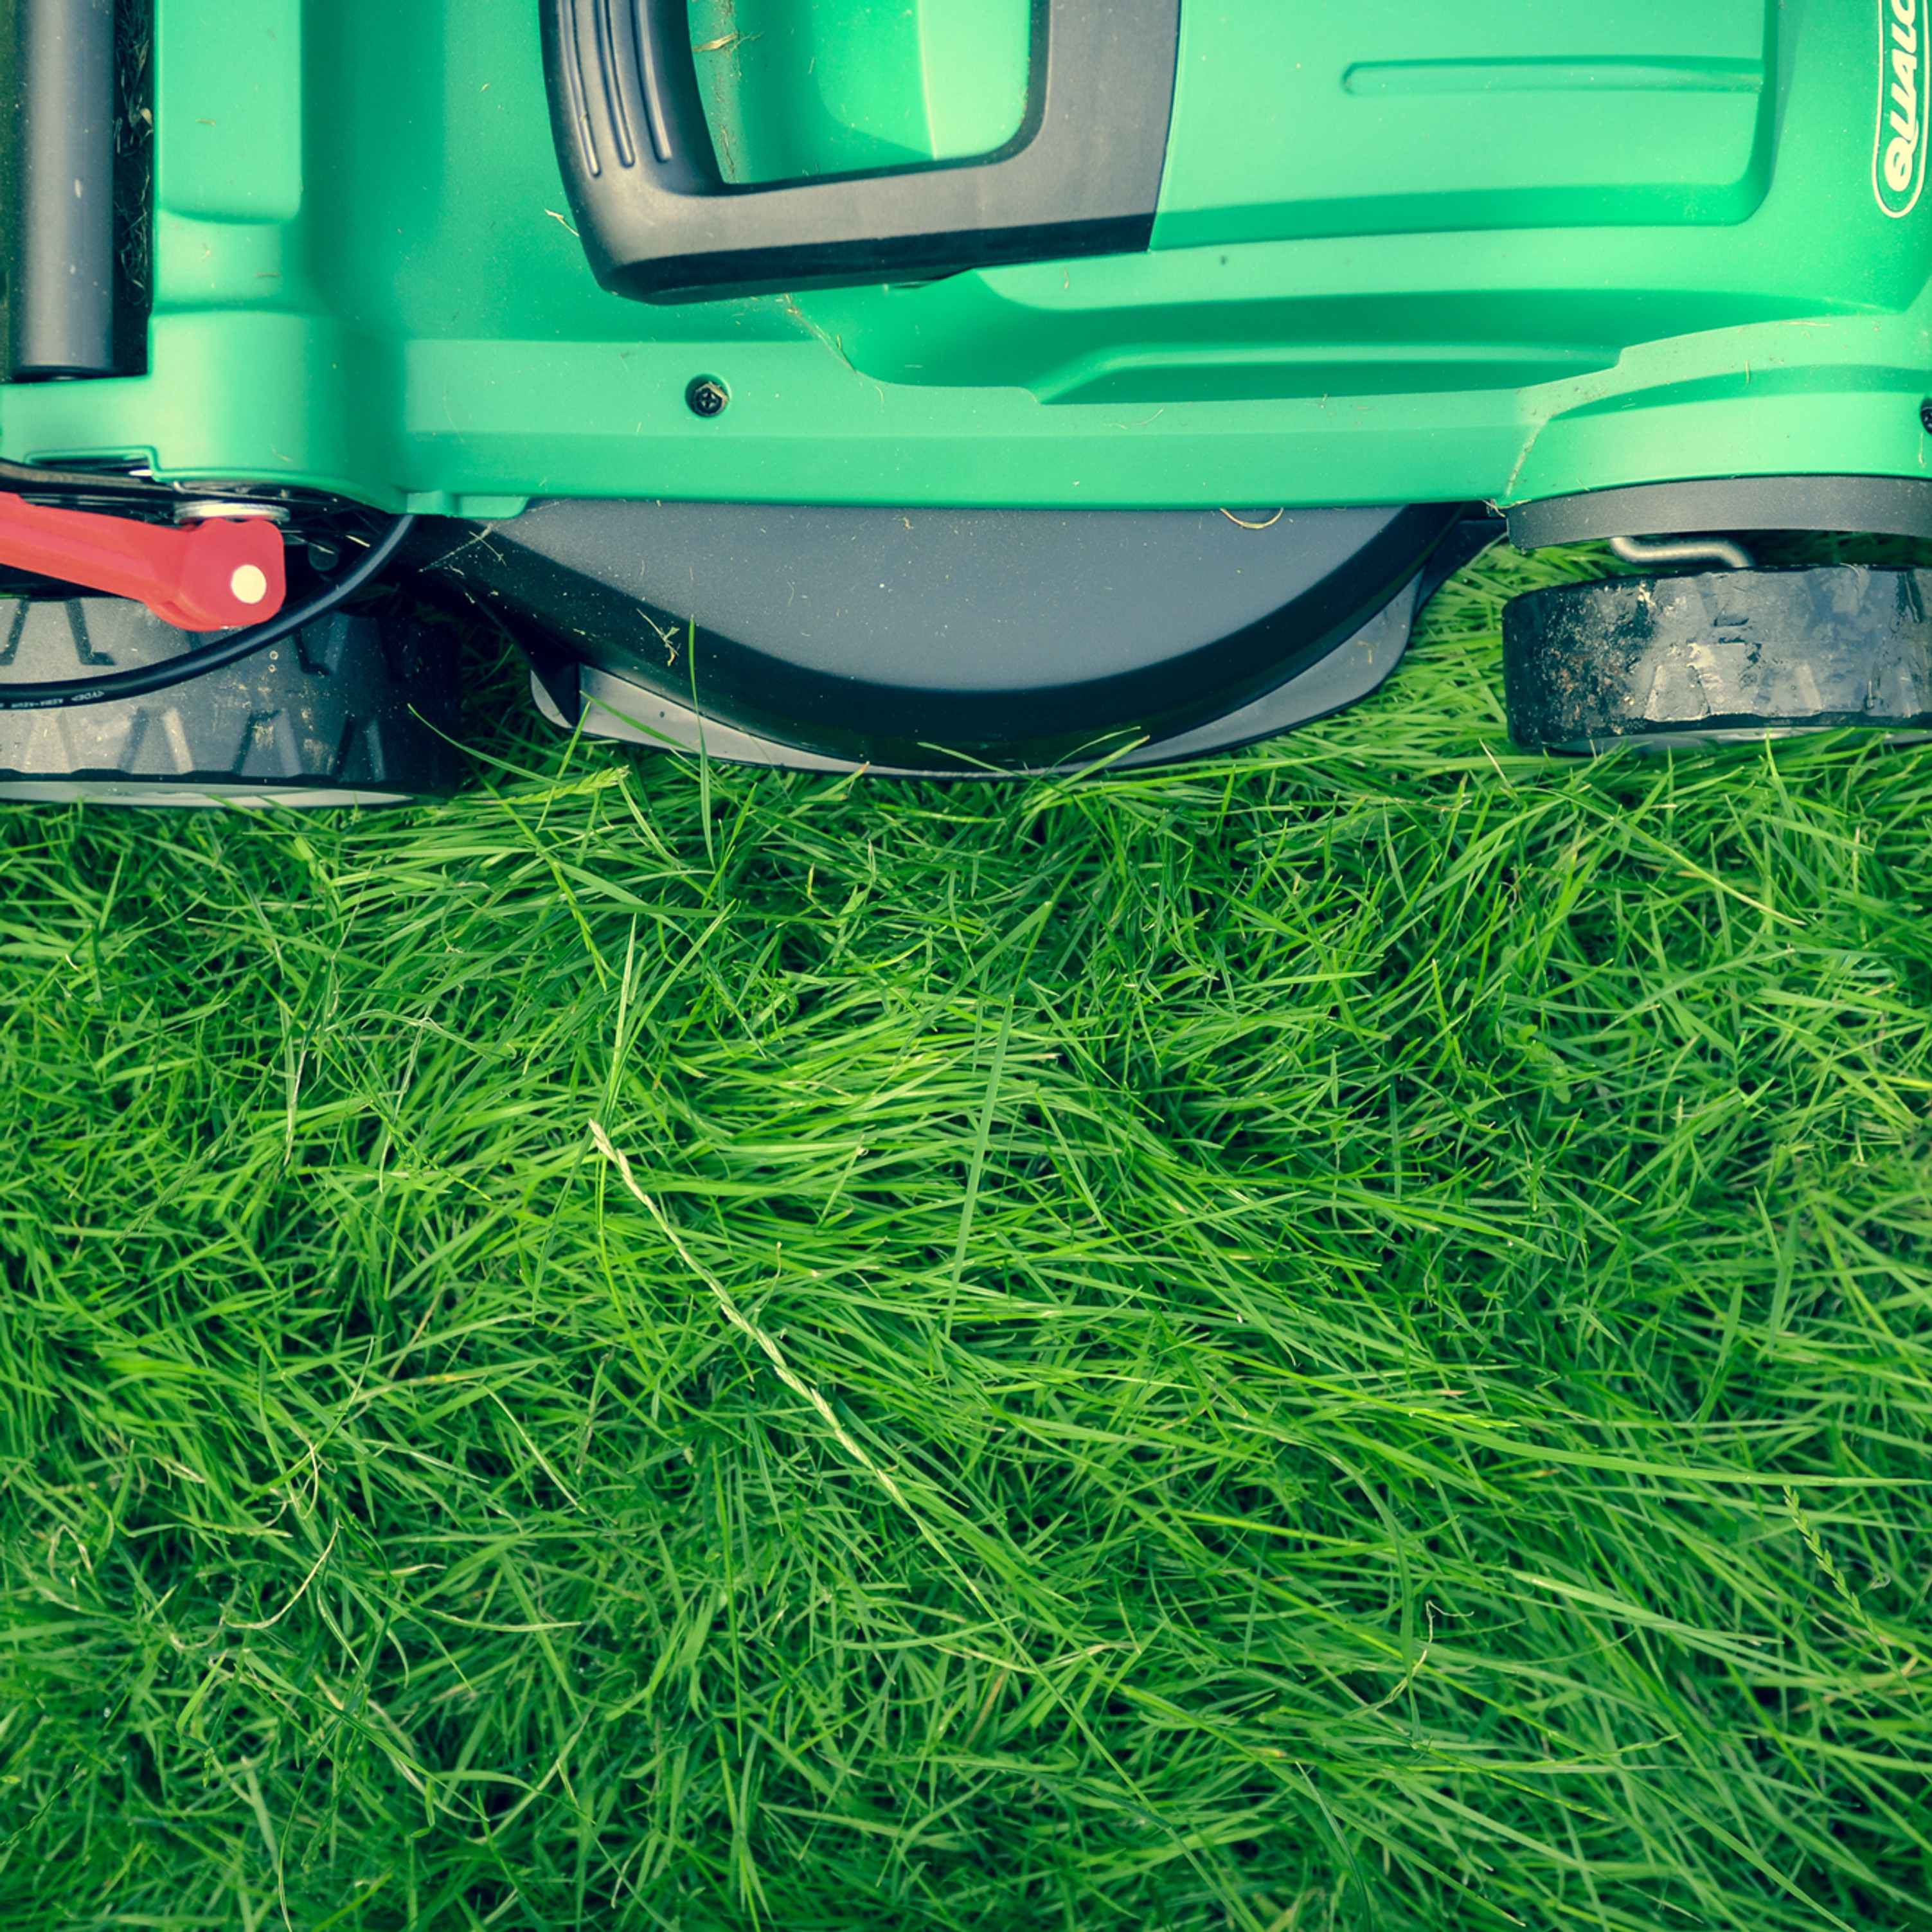 Landscaping and Lawn Care Service